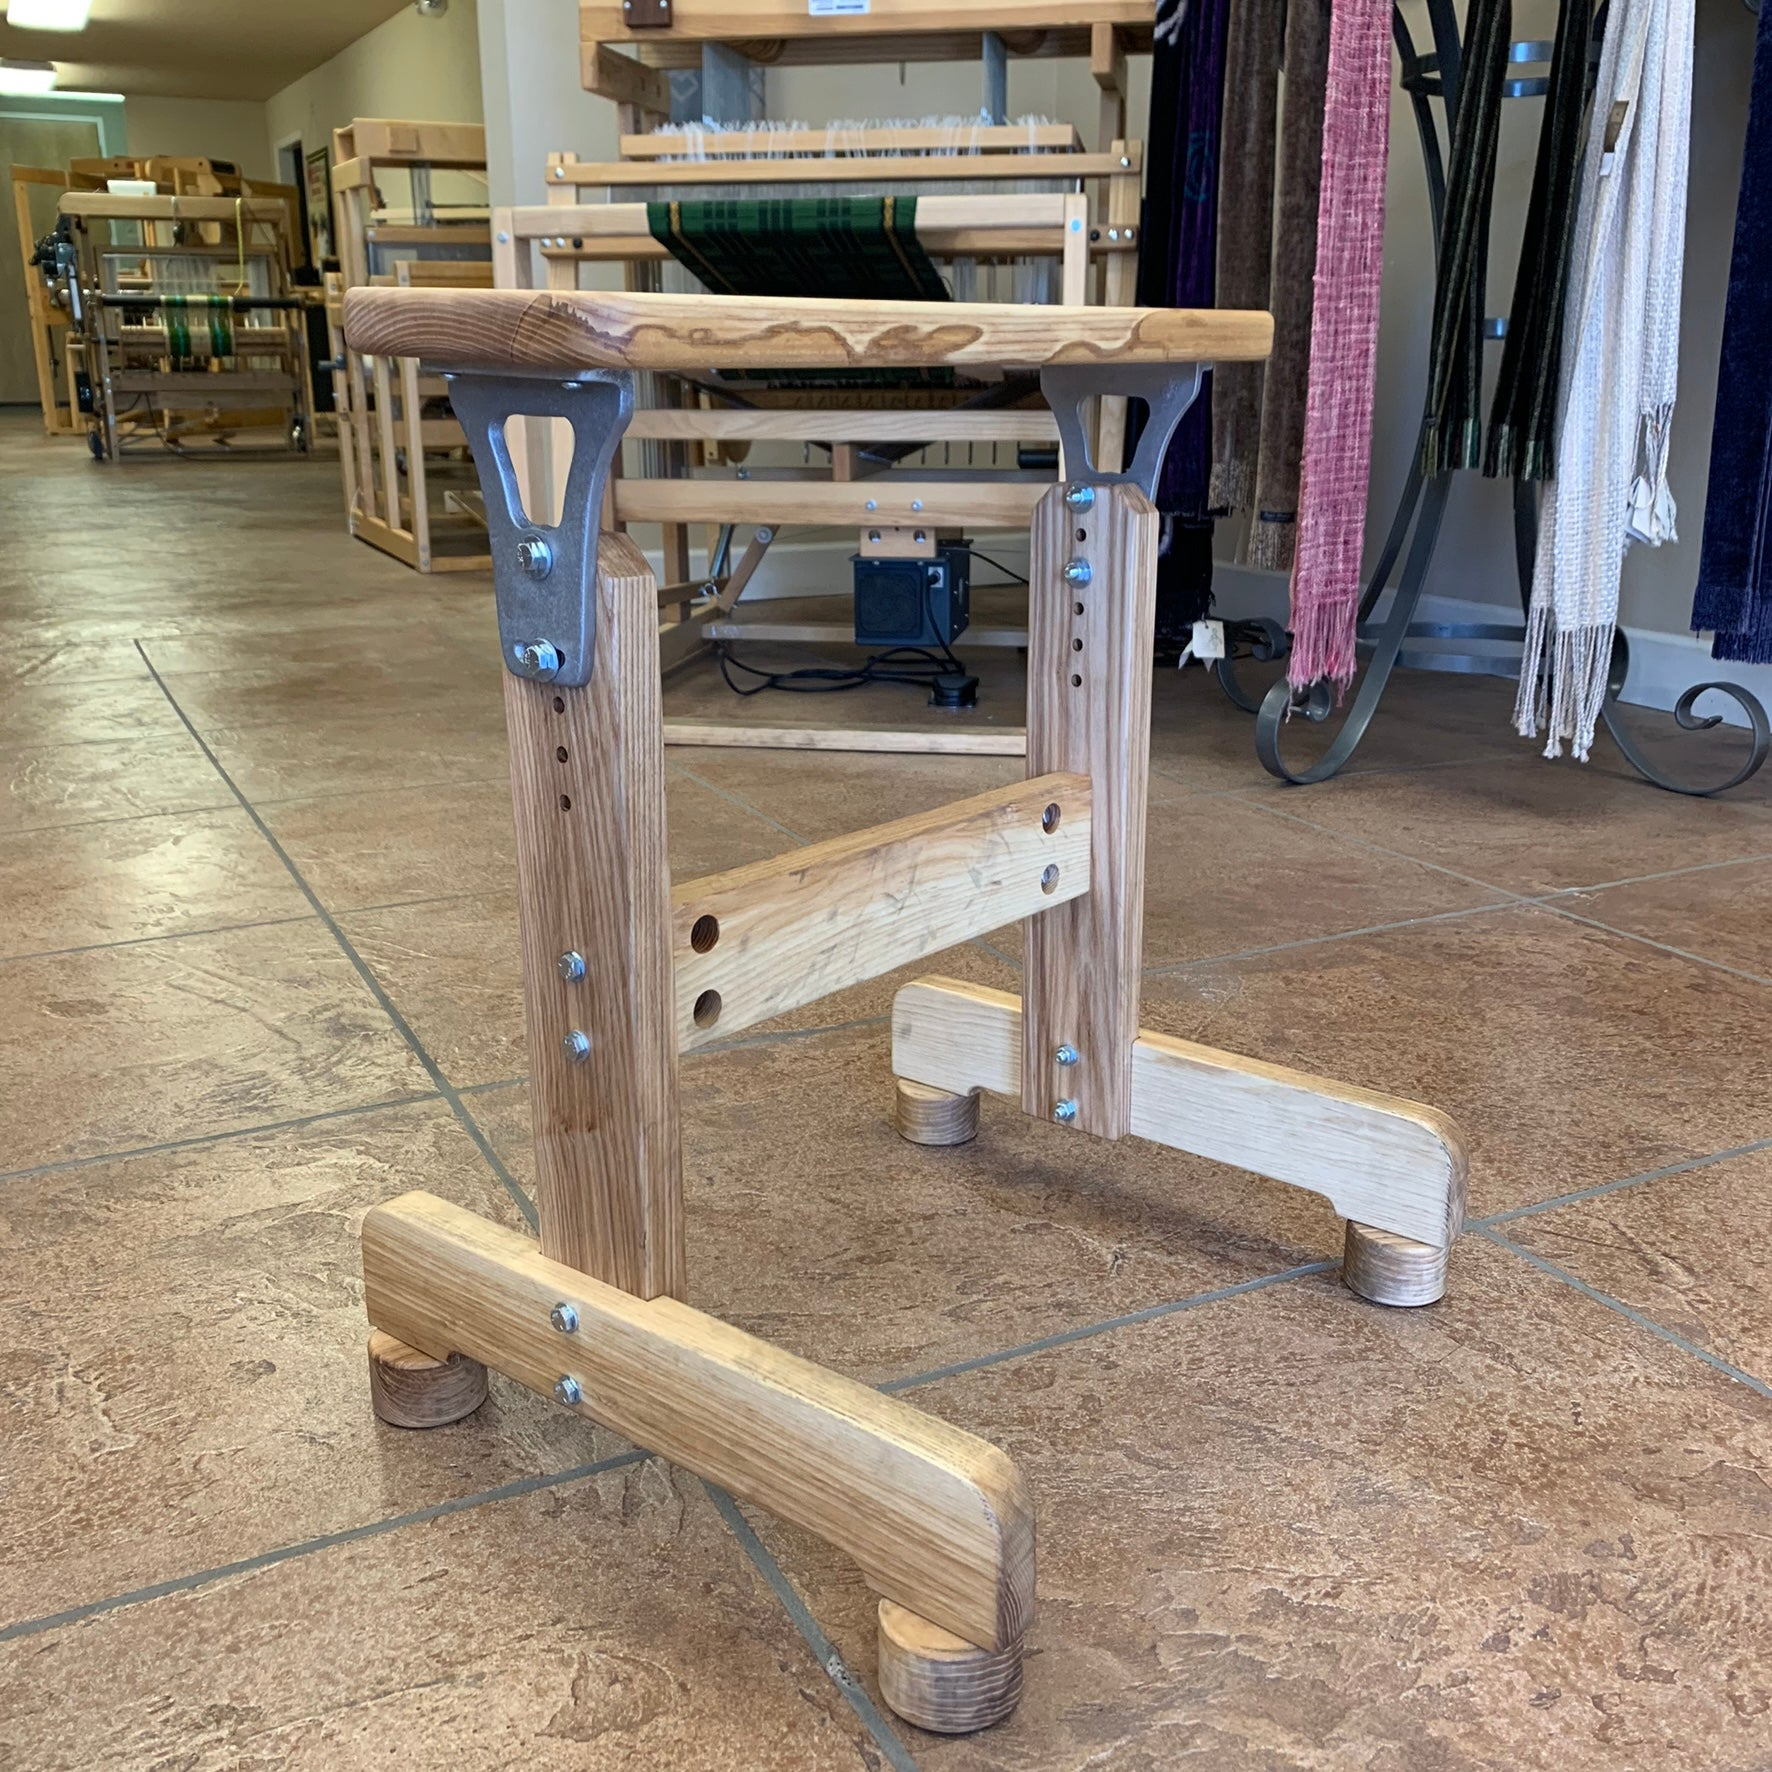 Wooden Bench (adjustable height)